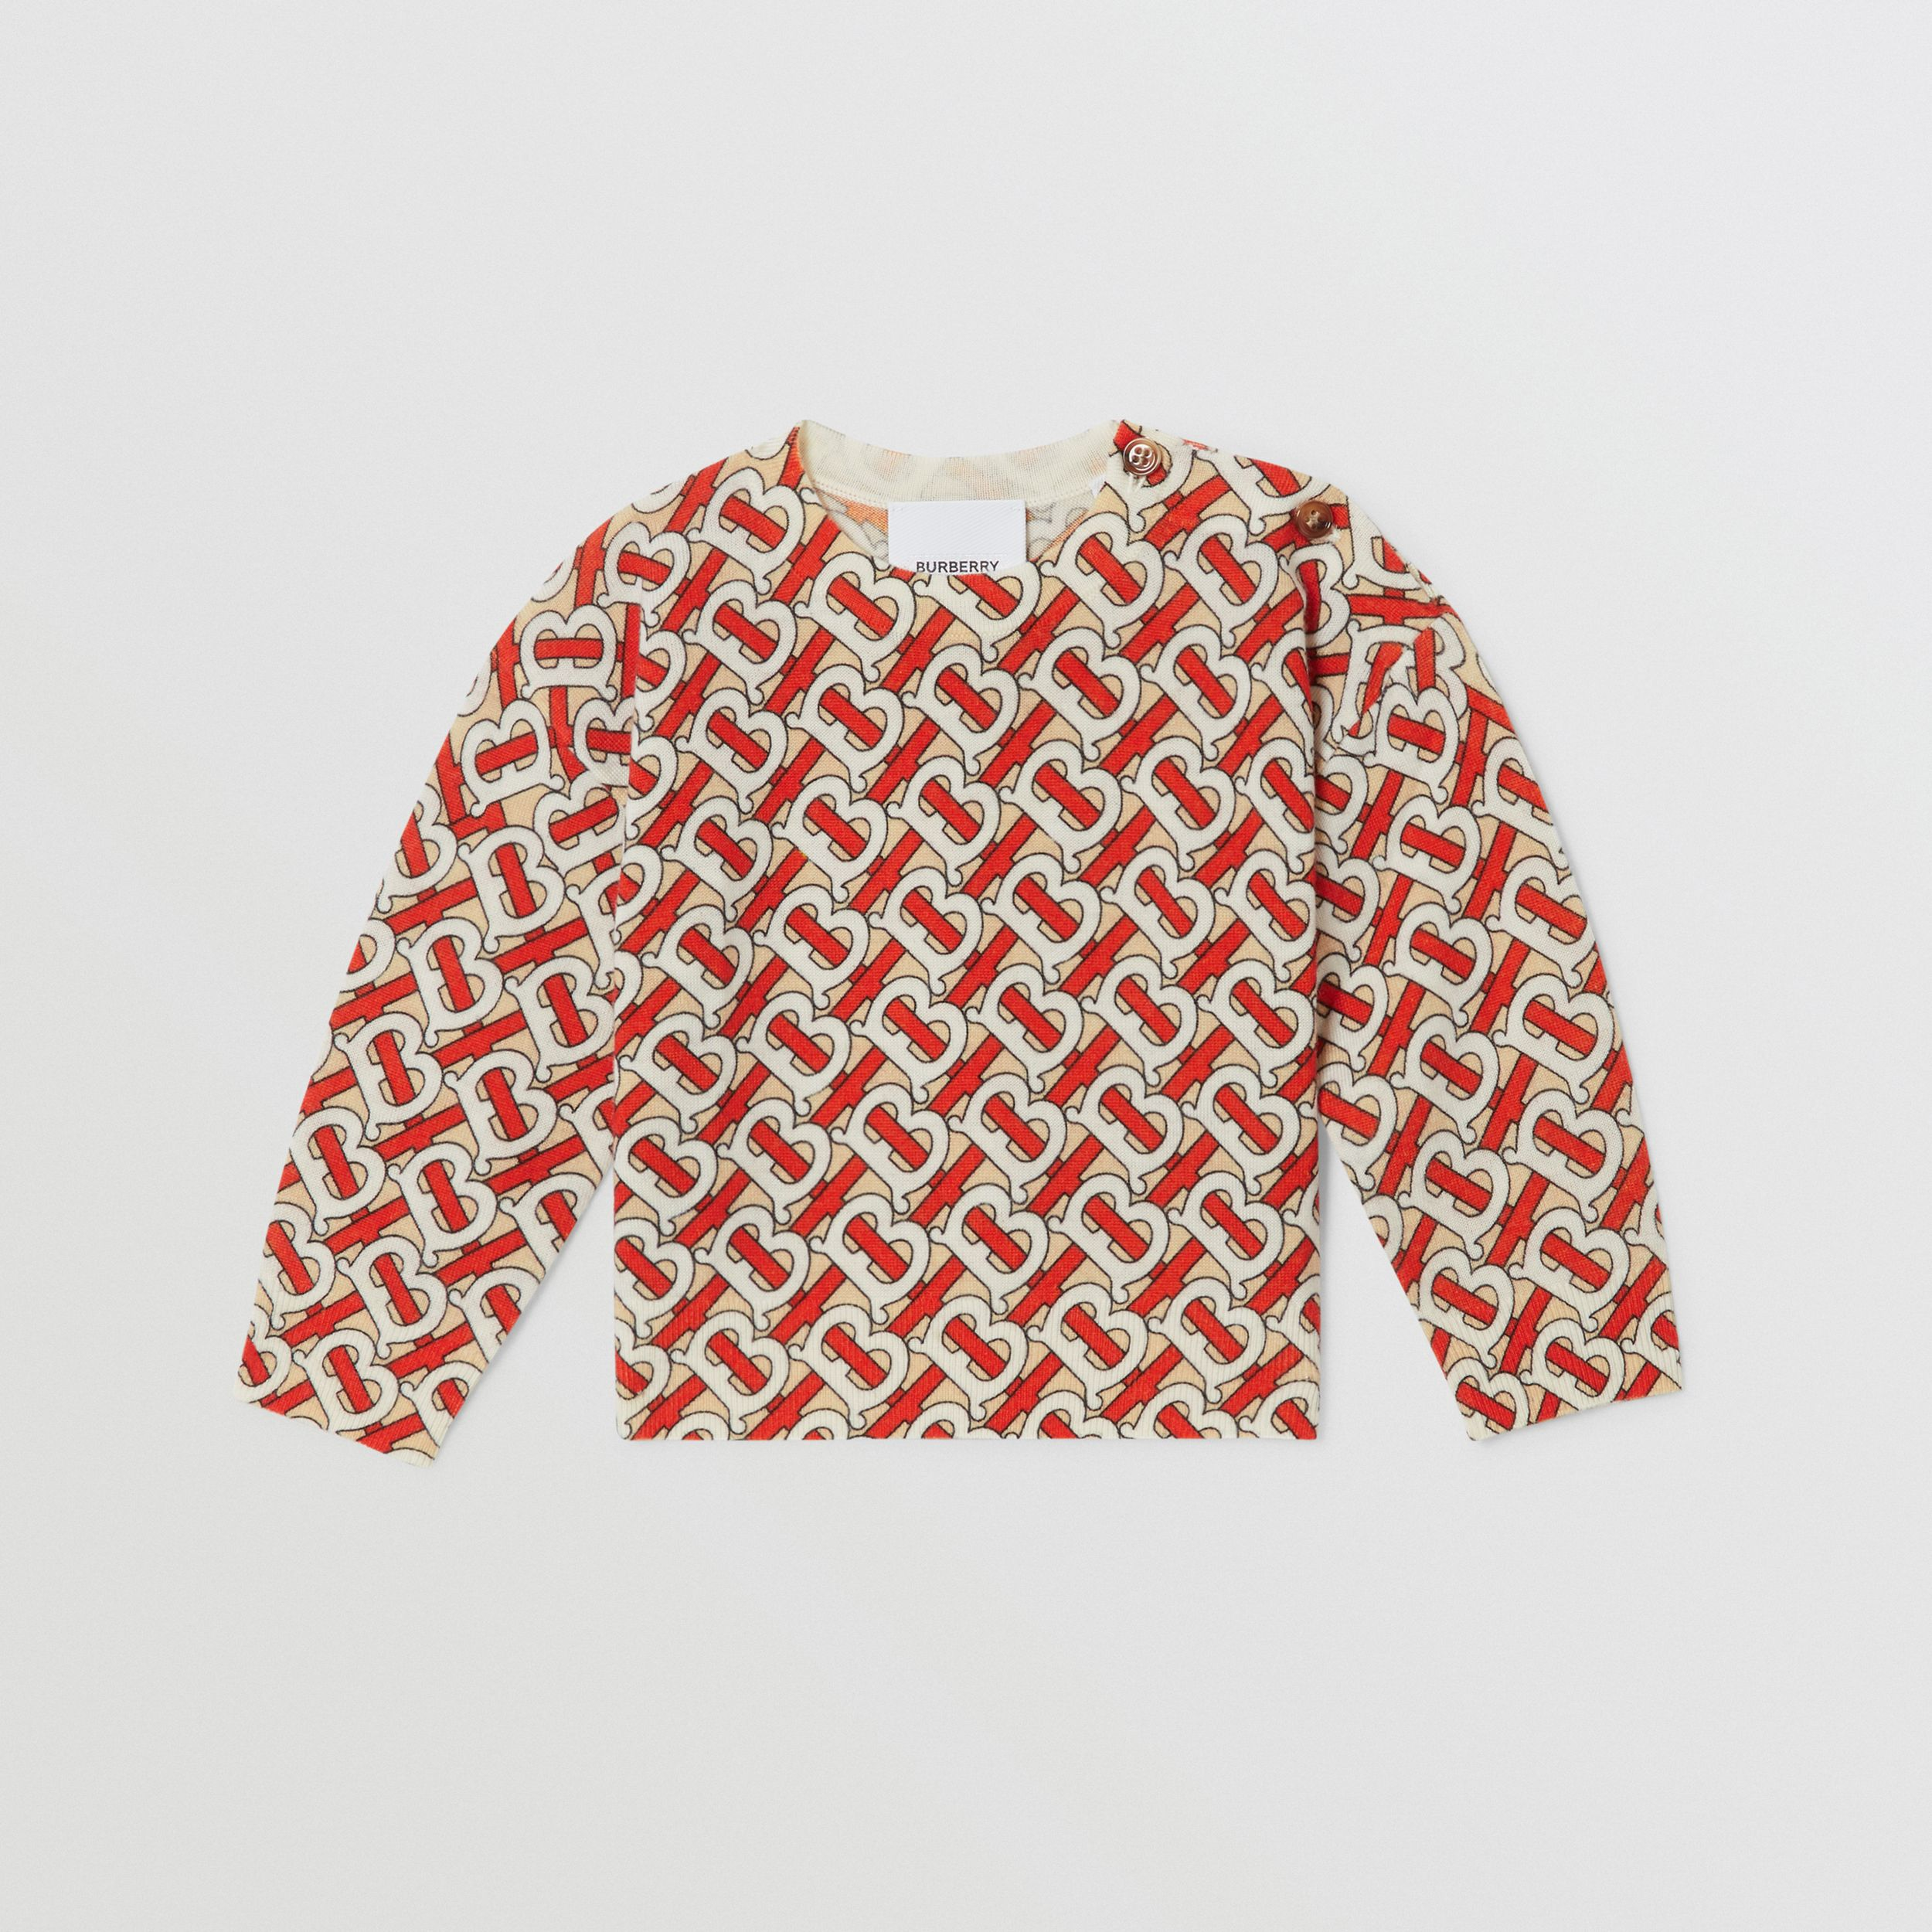 Monogram Print Merino Wool Sweater in Vermilion Red - Children | Burberry - 1